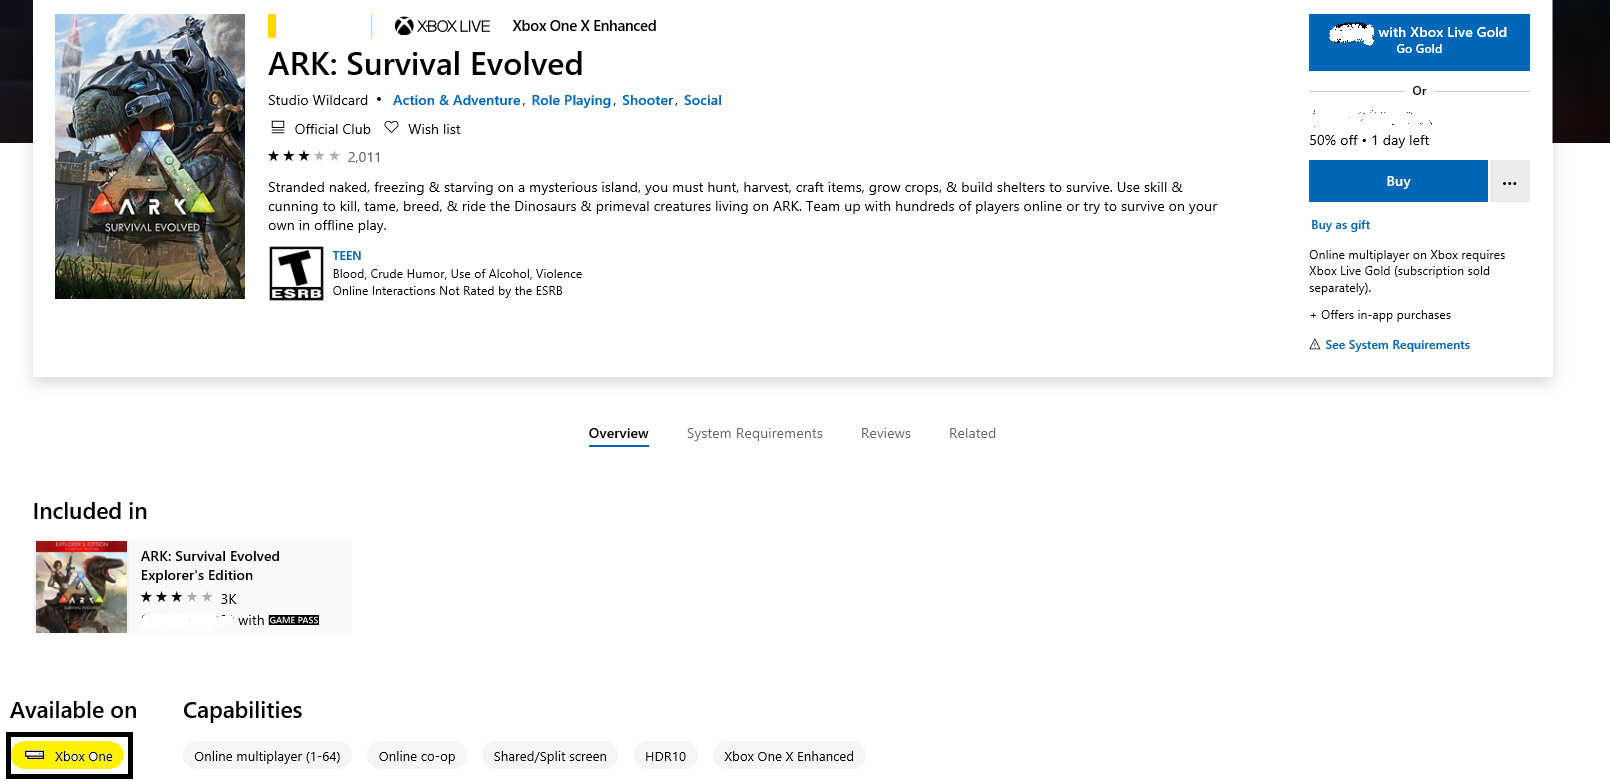 Ark survival evolved purchased and downloaded but can't see it on my pc 3f3e8035-d45a-4794-8581-6ba2c23f8874?upload=true.png